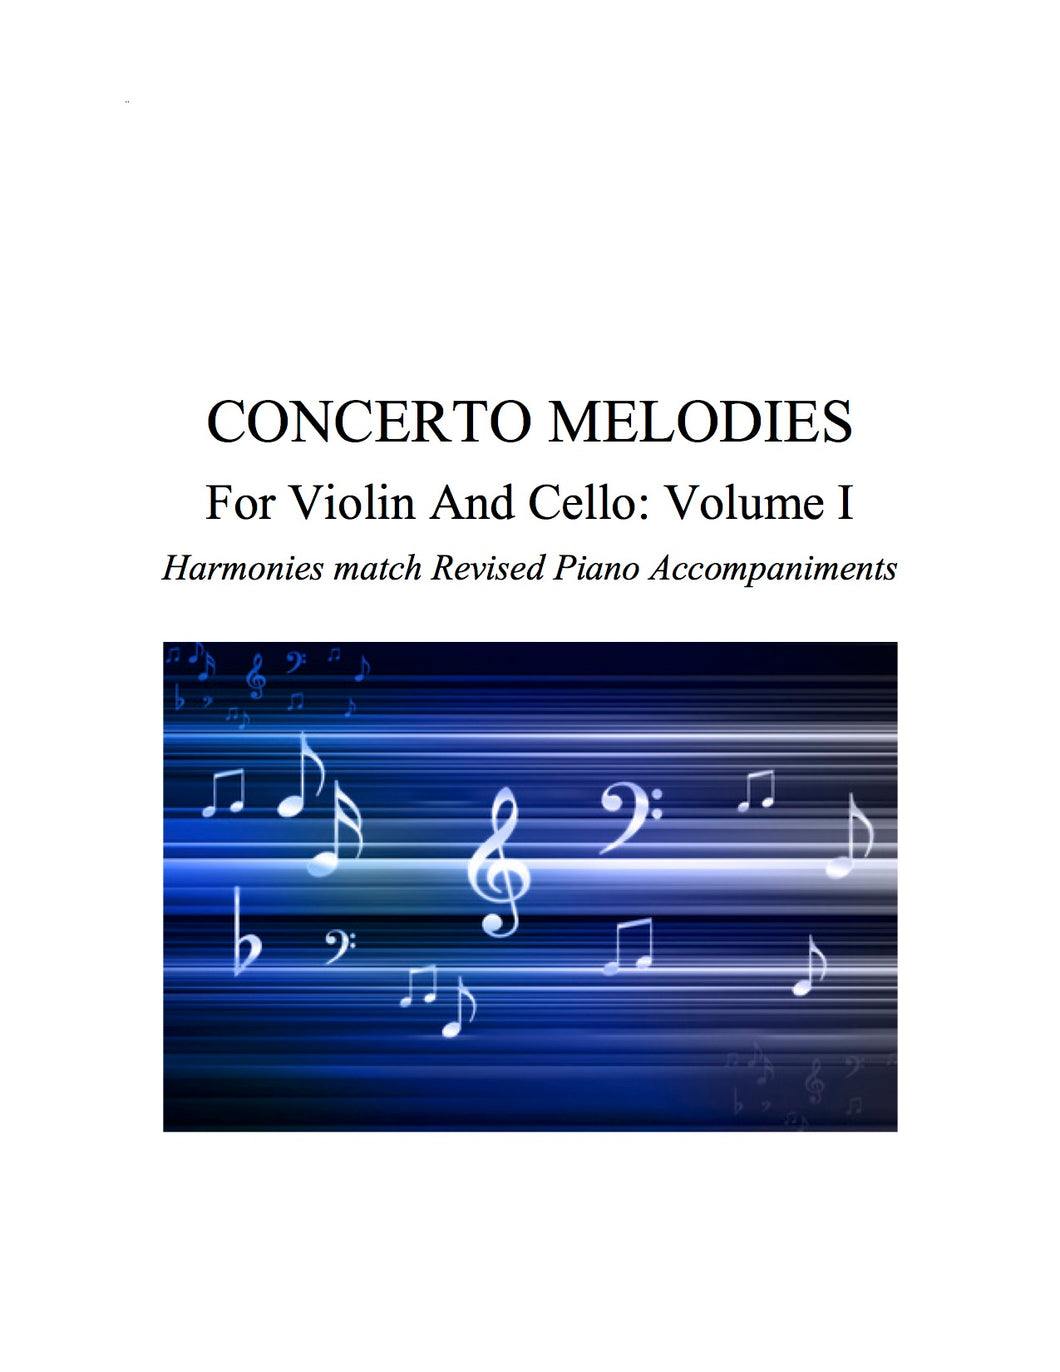 012 - Concerto Melodies For Violin/Cello, Volume I (Seitz #2, Vivaldi a & g minor, Reiding b minor)